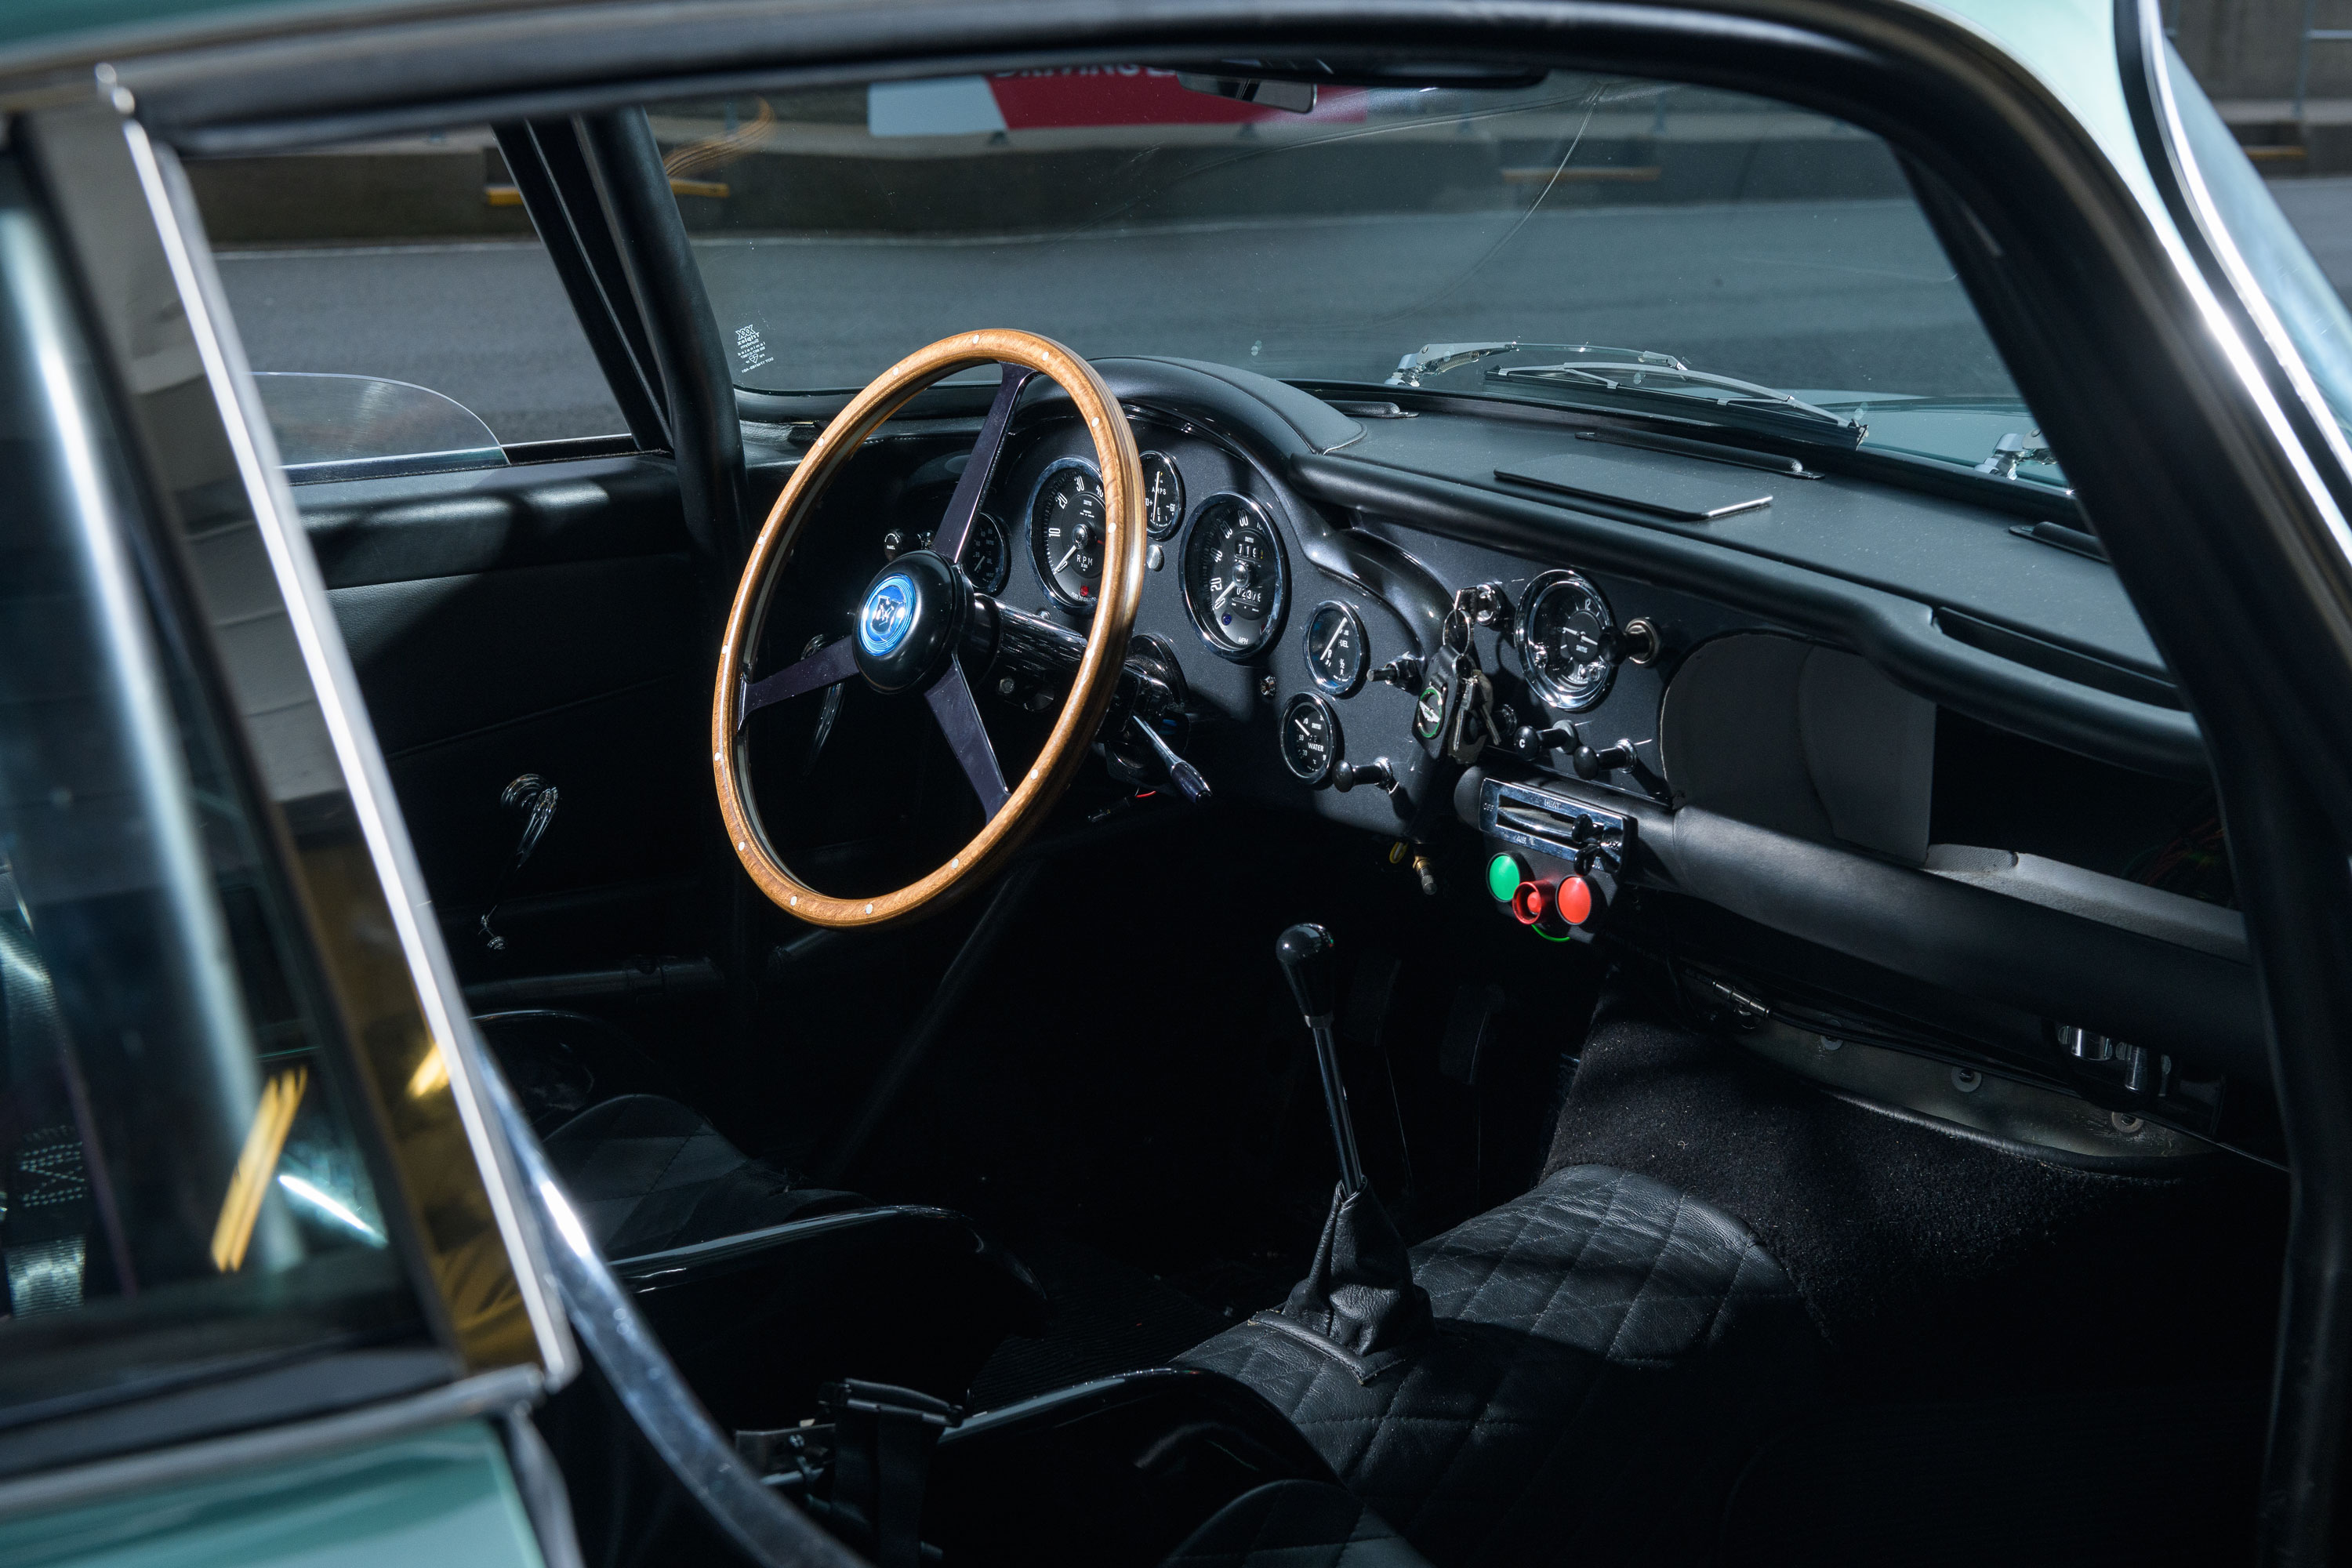 1959 Aston Martin DB4 GT interior